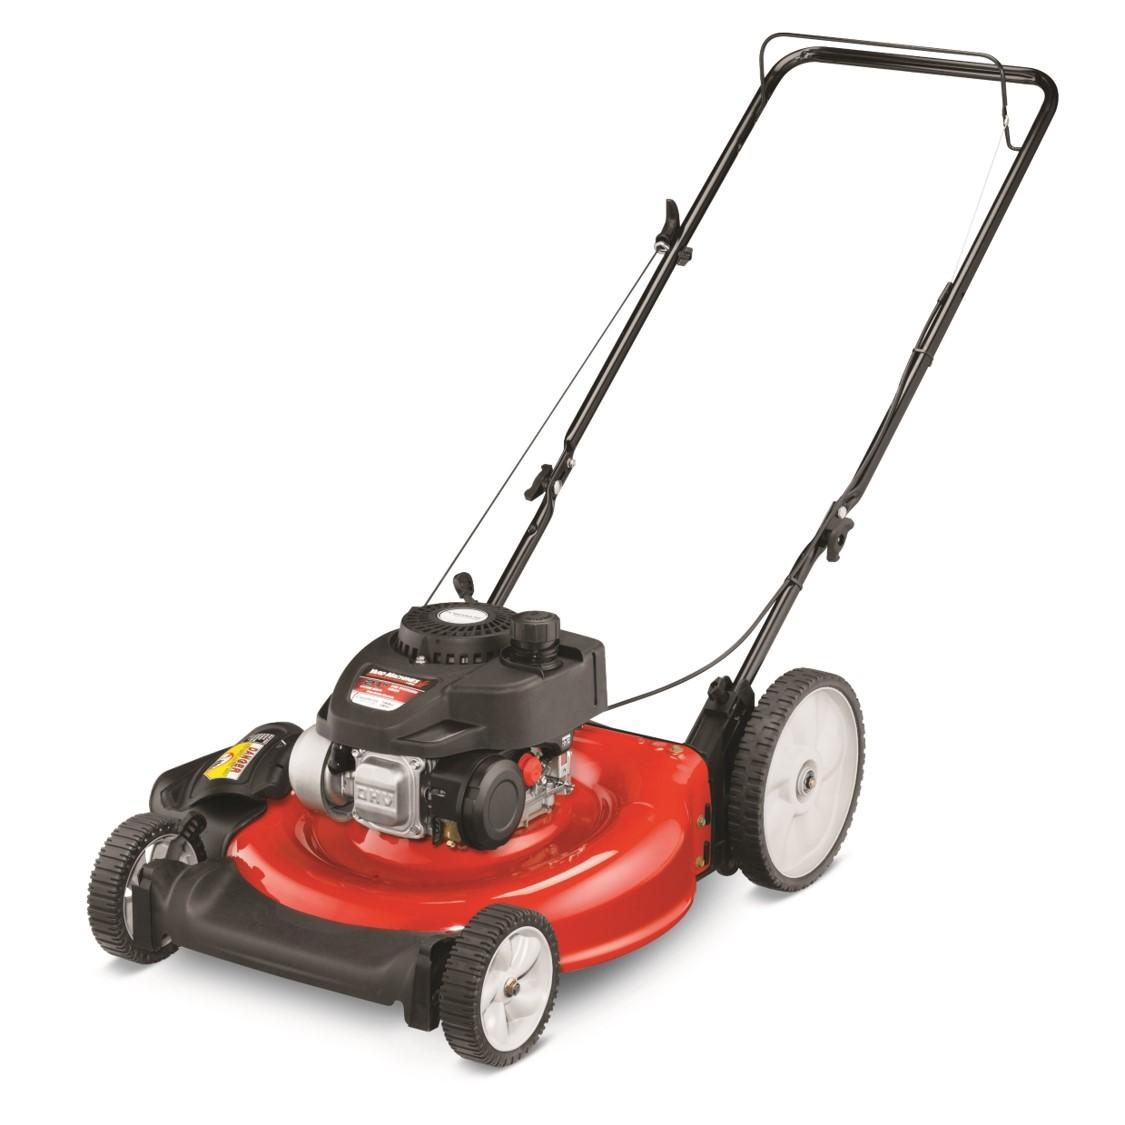 Amazon.com: Yard Machines cortadora de césped 140 cc ...